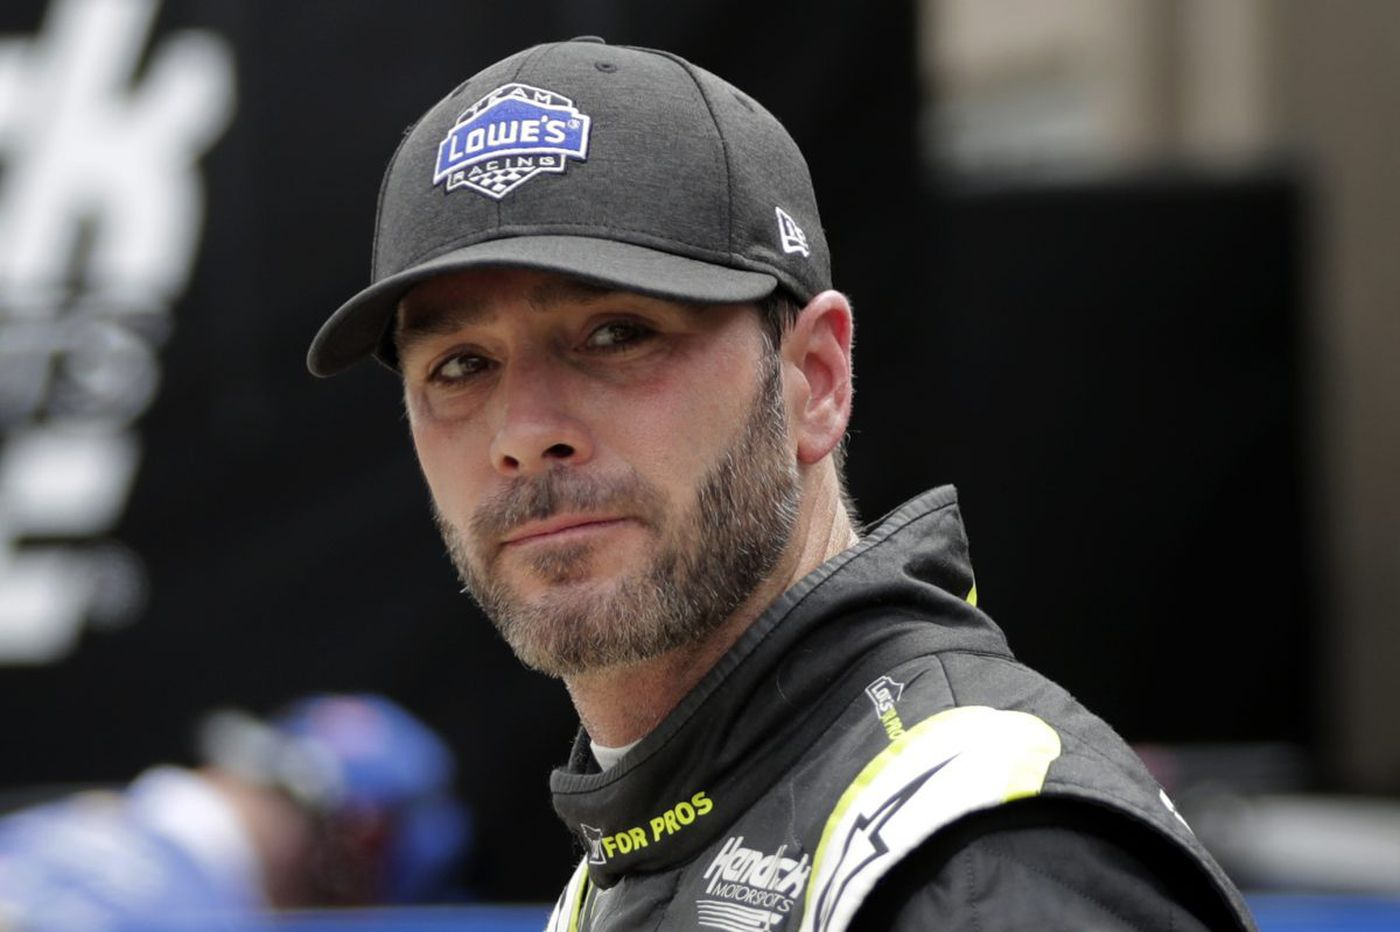 Jimmie Johnson looks for a positive bump at Dover, his favorite track